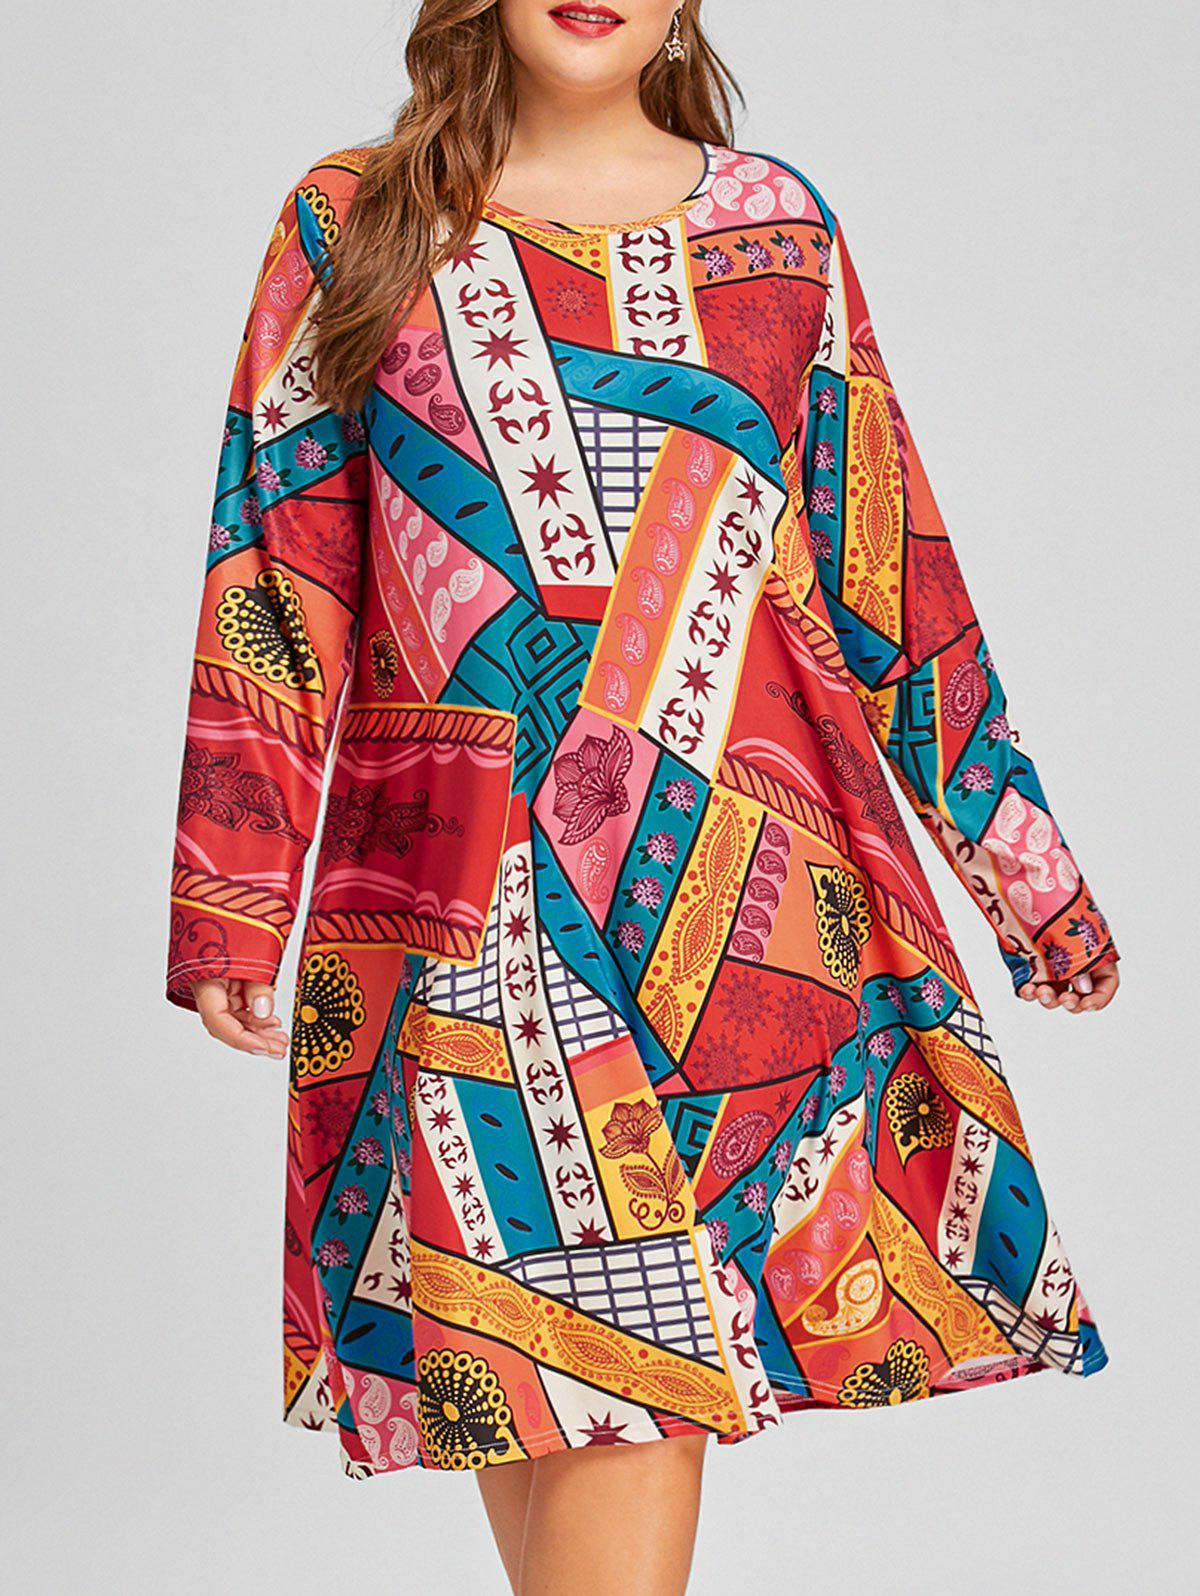 Ethnic Geometric Plus Size Tunic DressWOMEN<br><br>Size: 5XL; Color: COLORMIX; Style: Casual; Material: Polyester; Silhouette: A-Line; Dresses Length: Knee-Length; Neckline: Round Collar; Sleeve Length: Long Sleeves; Pattern Type: Geometric; With Belt: No; Season: Fall,Spring; Weight: 0.4200kg; Package Contents: 1 x Dress;